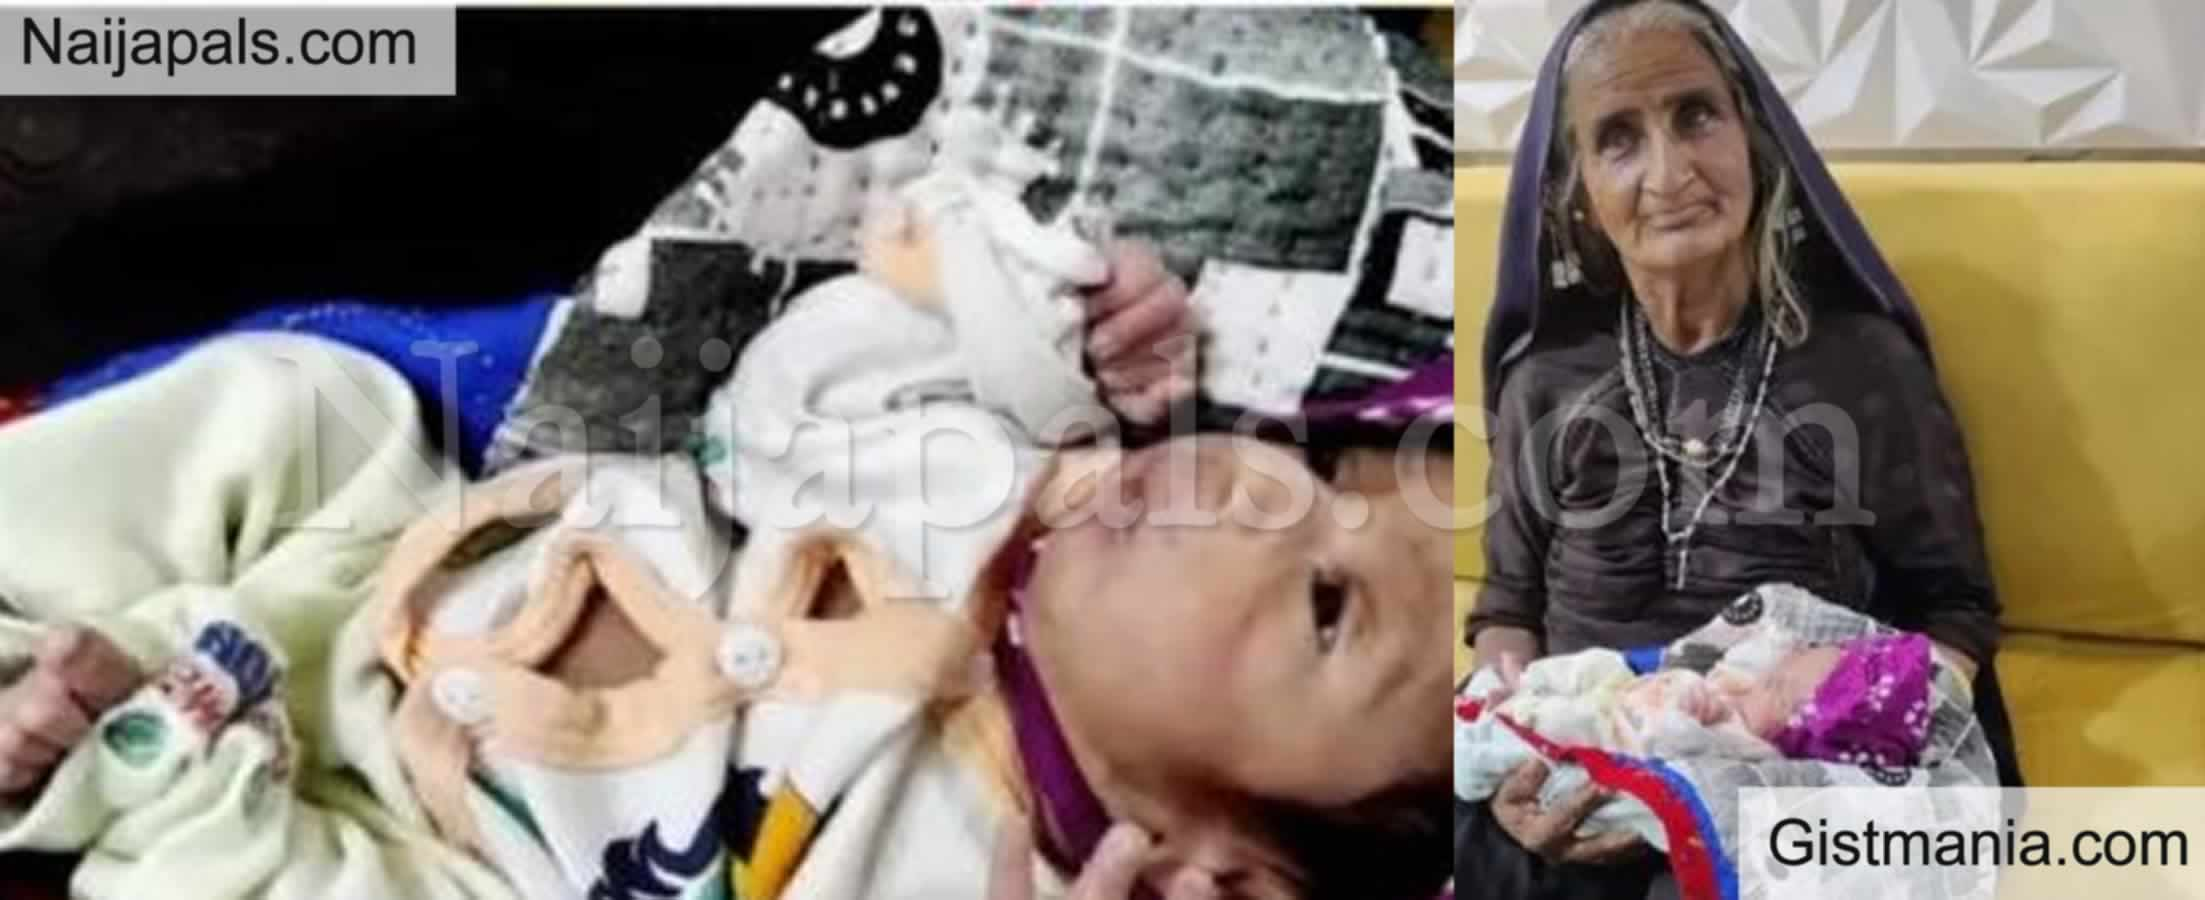 <img alt='.' class='lazyload' data-src='https://img.gistmania.com/emot/shocked.gif' /> Wow!<b> Indian Woman Gives Birth To Her First Child At The Age Of 70</b> (PHOTOS)